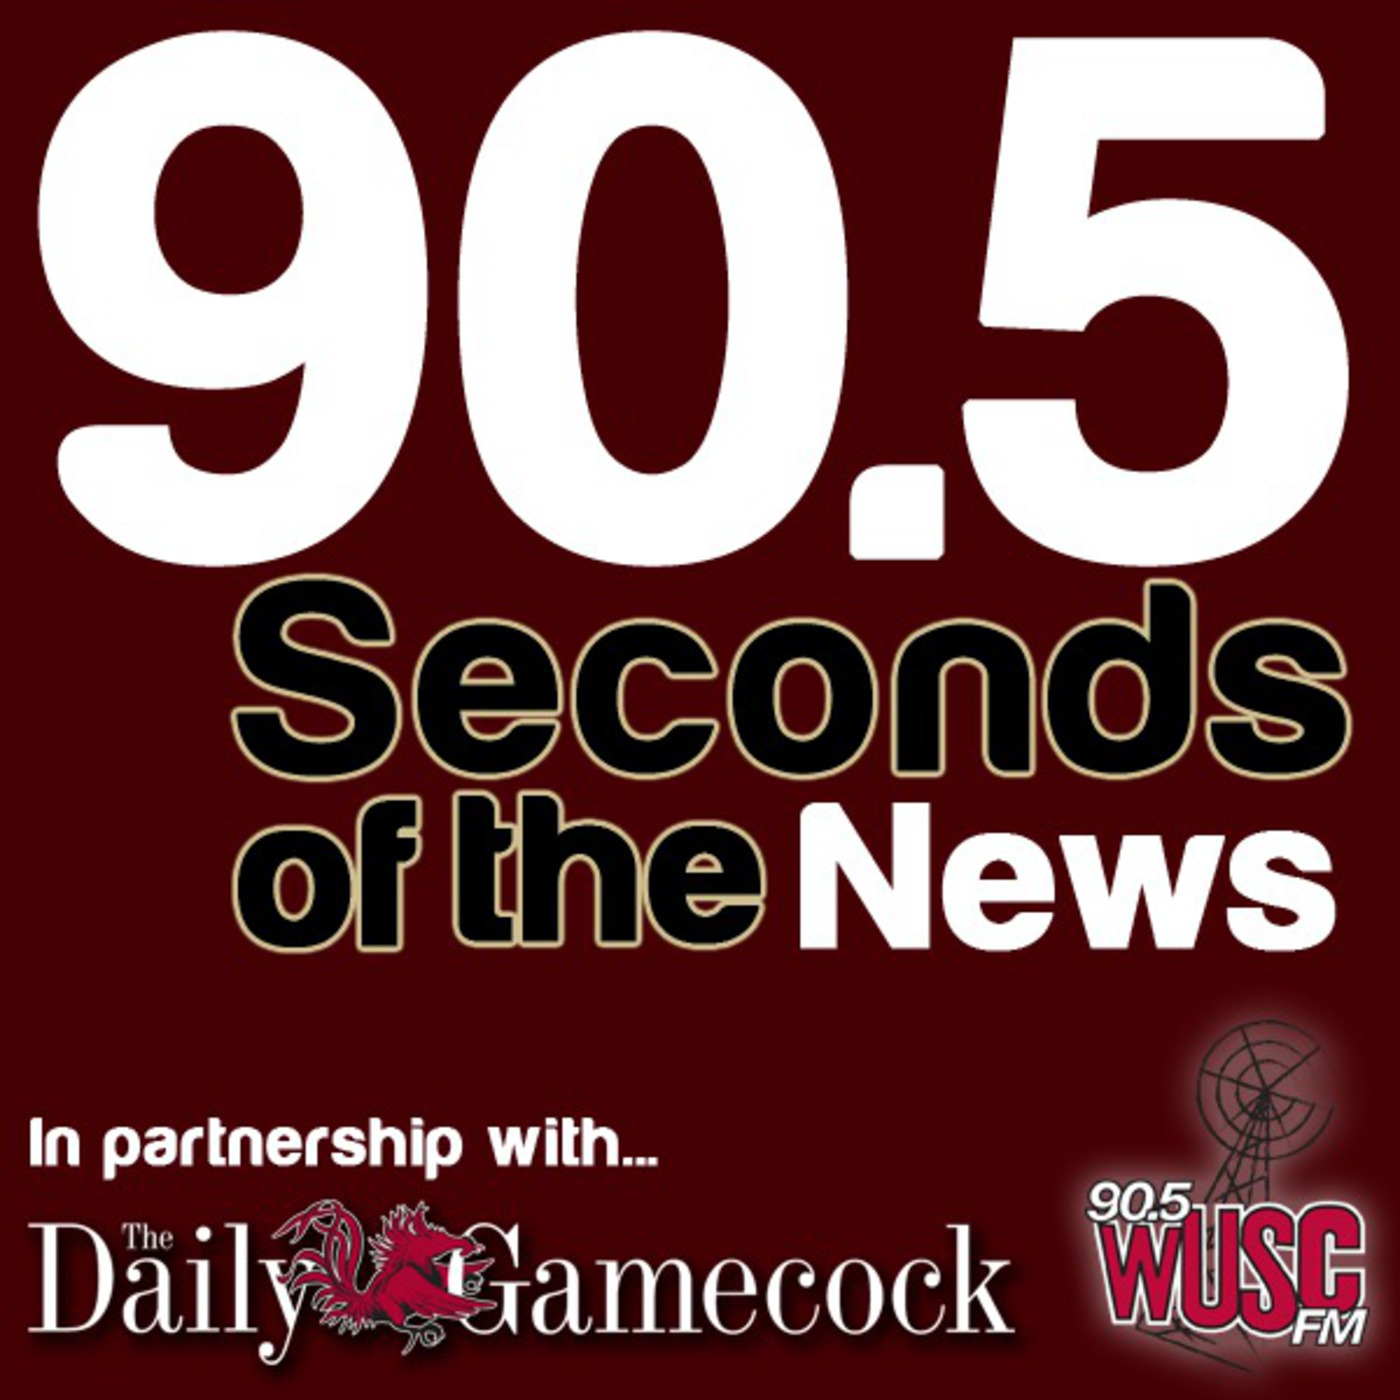 90.5 Seconds of the News